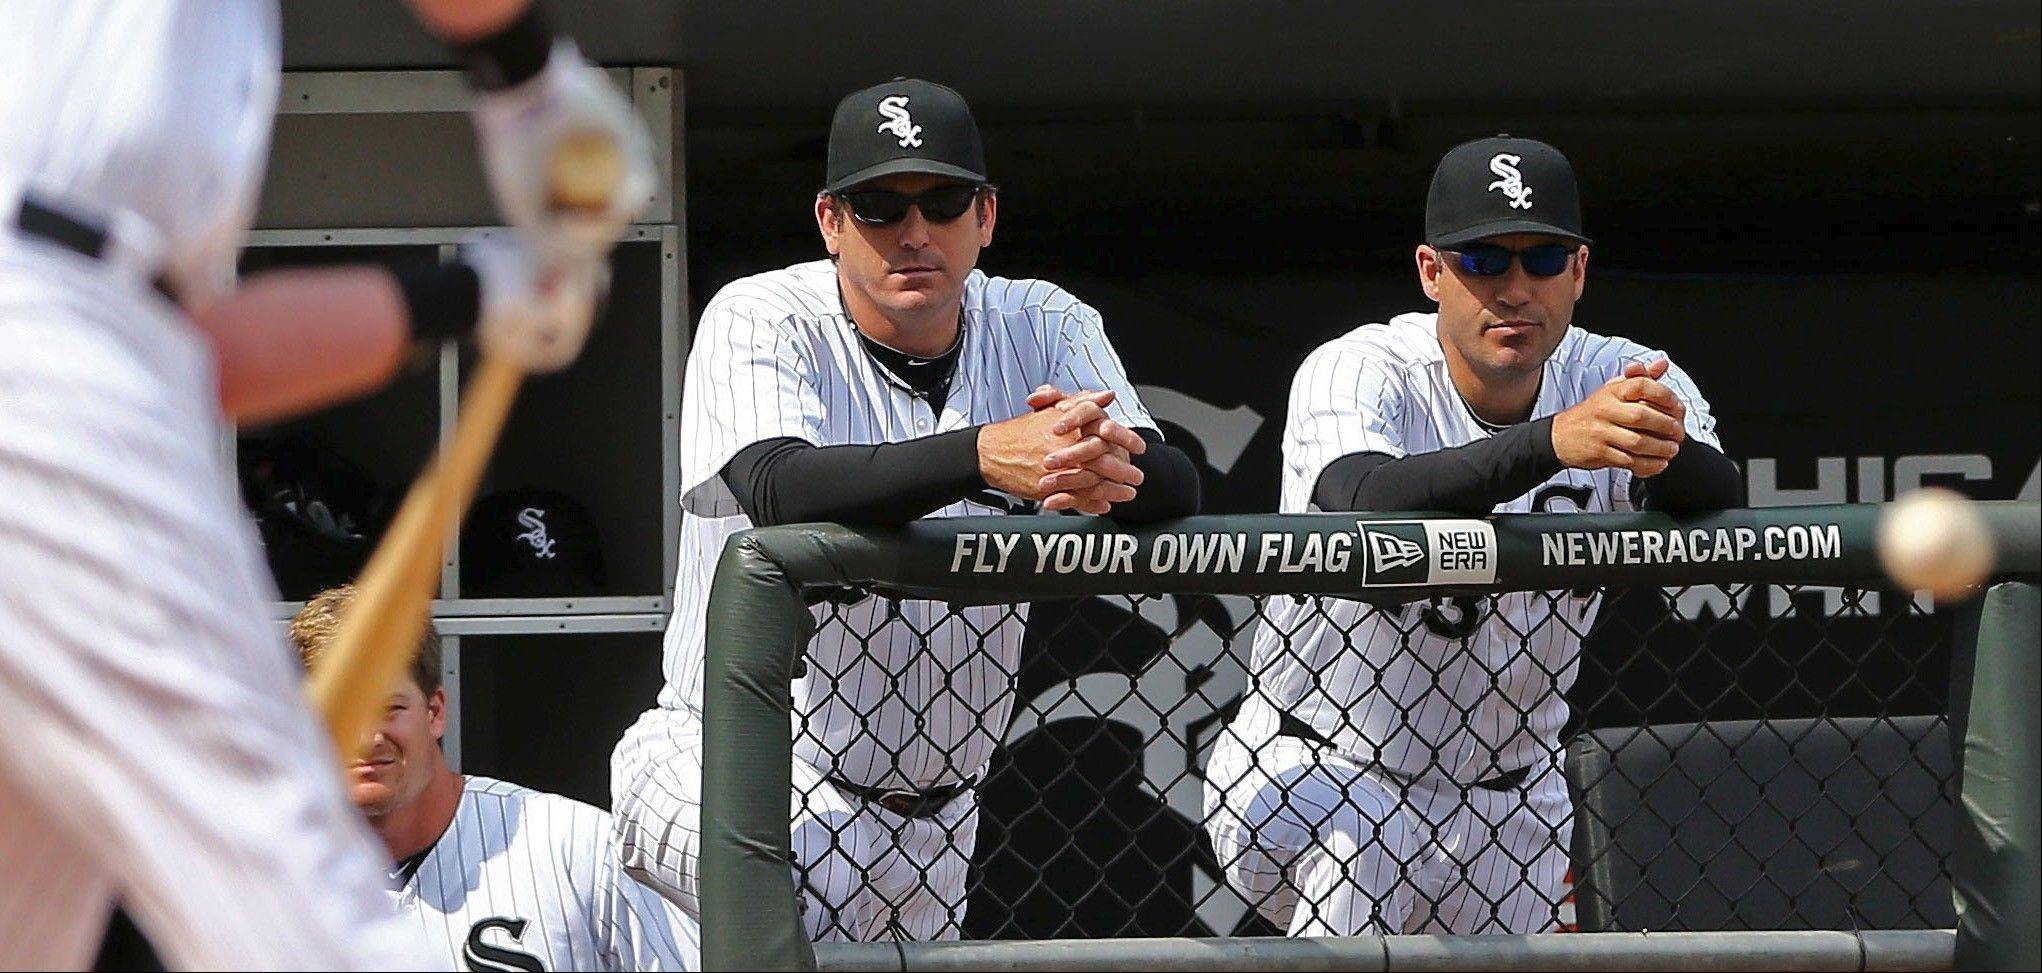 White Sox manager Robin Ventura, far right, has watched his club struggle in the first half of the season, and Mike North wonders if Ventura has the right demeanor to turn this team around.